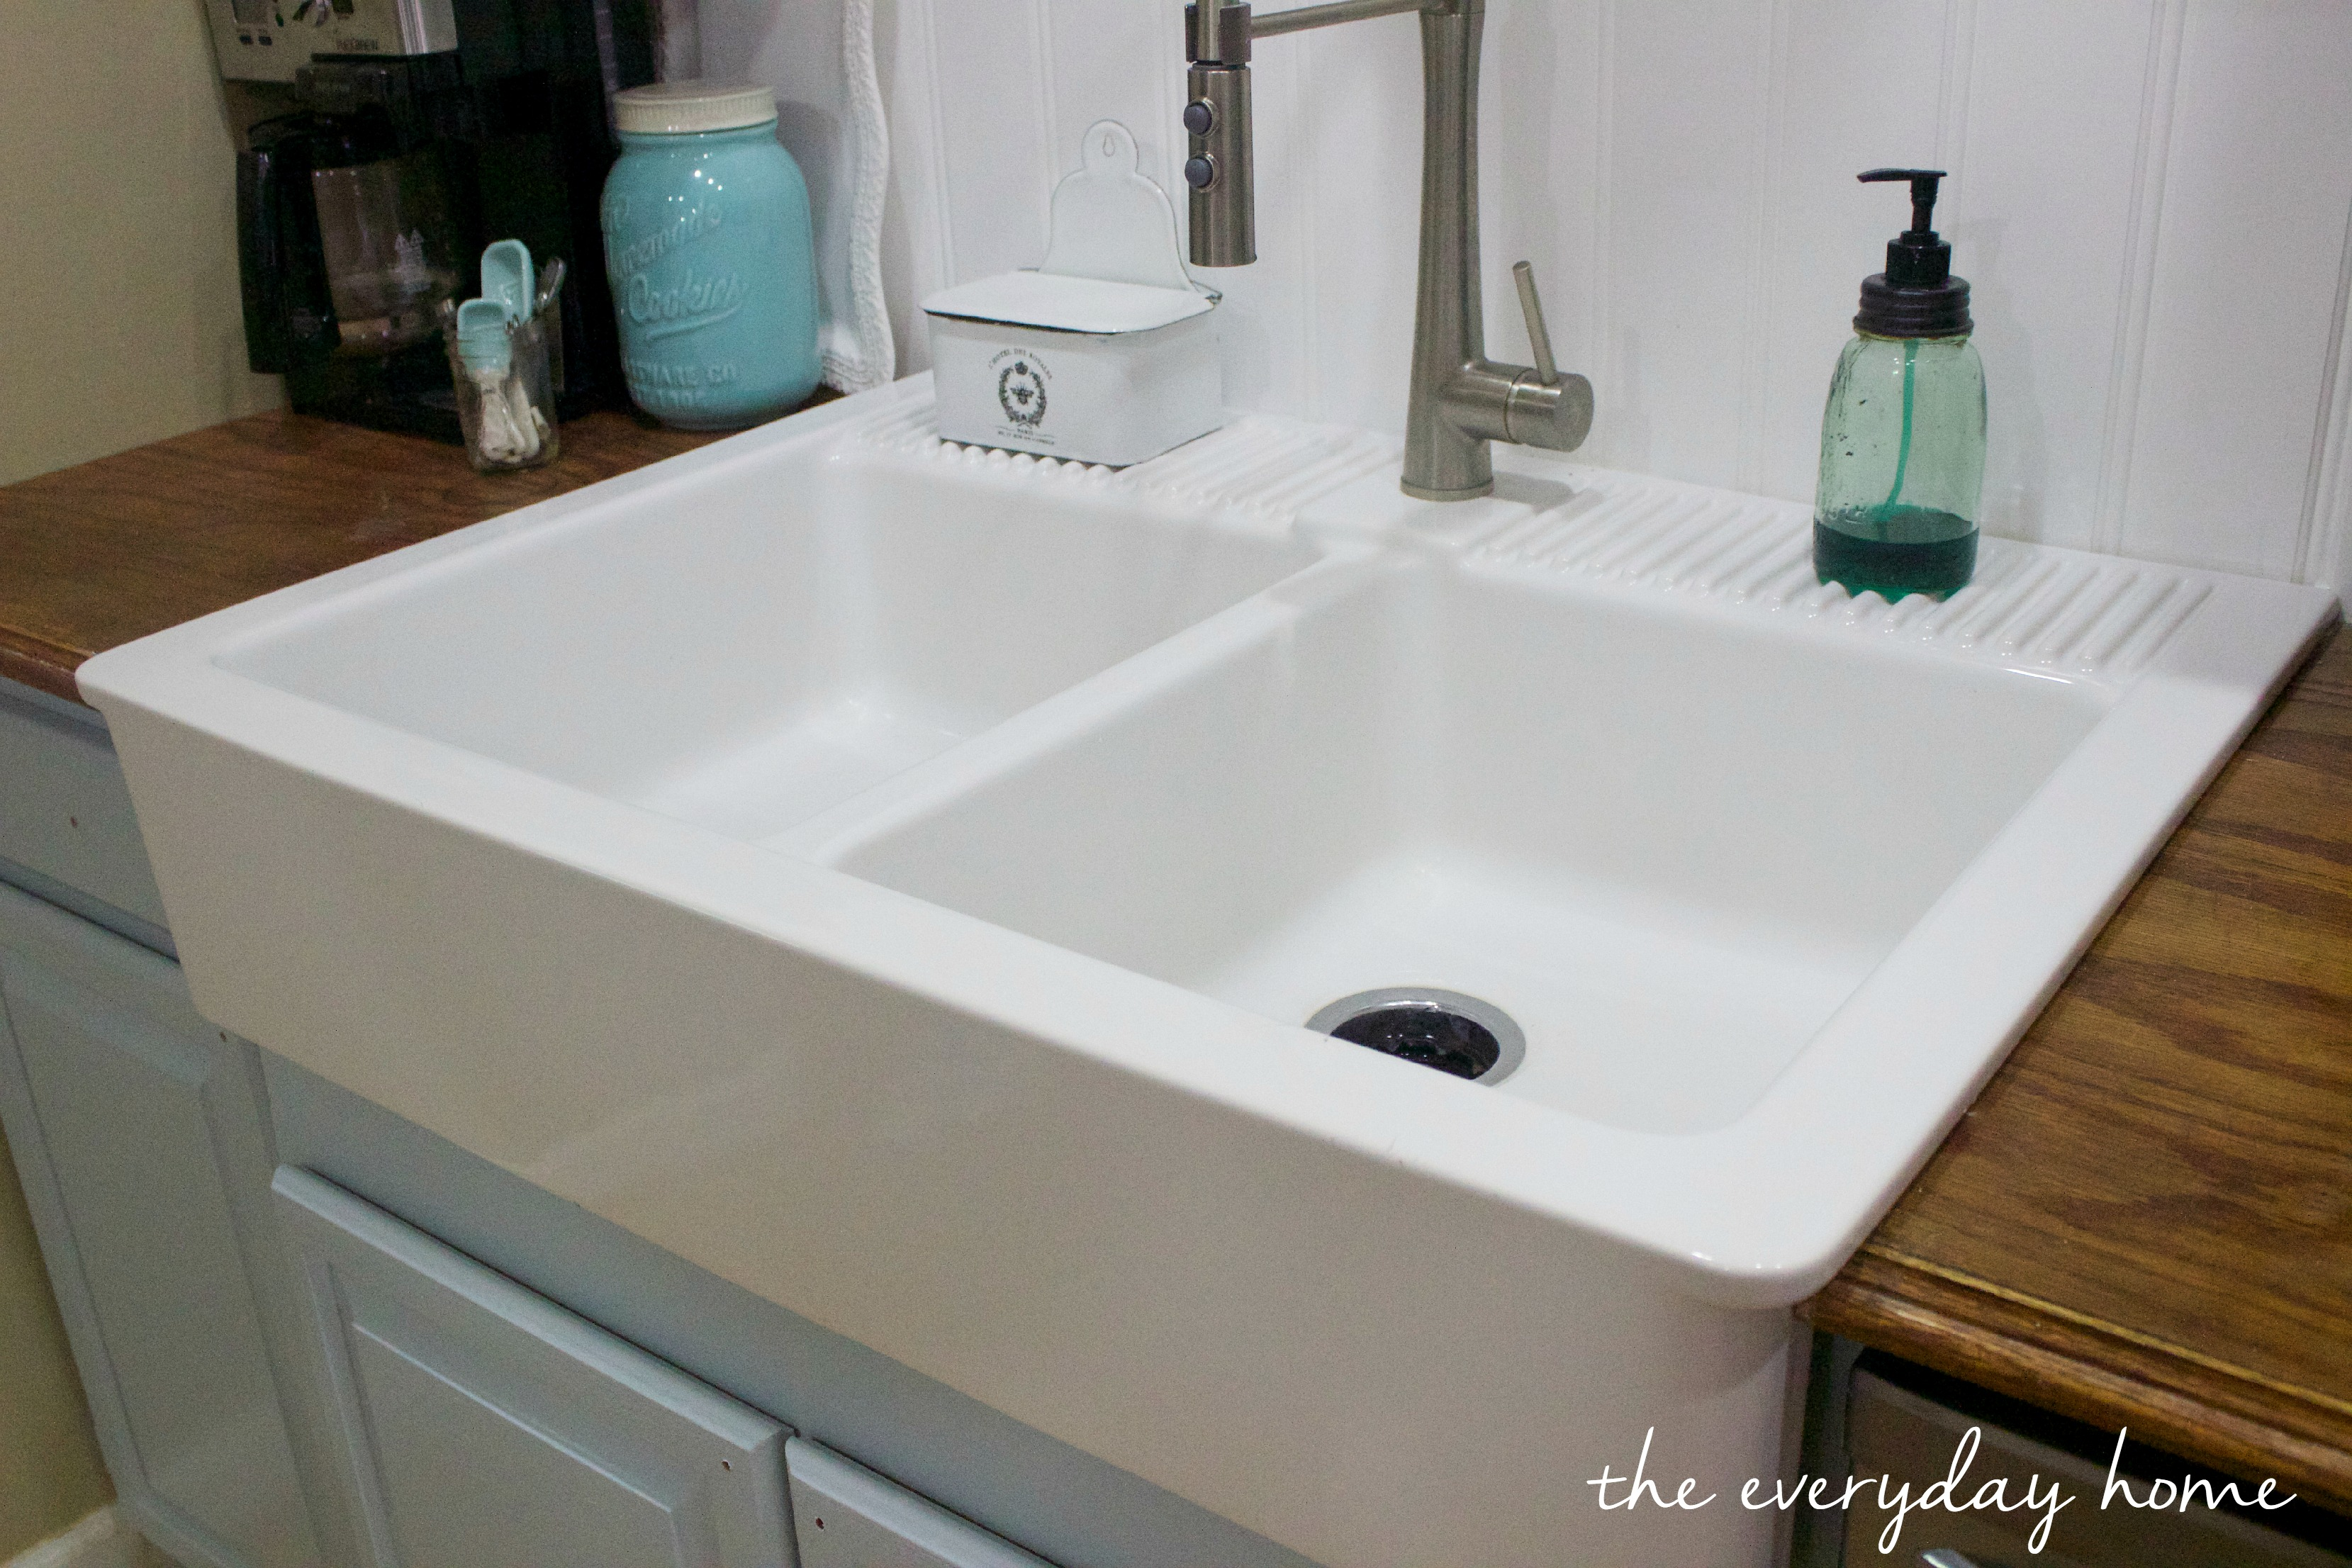 Ikea Farmhouse Sink The Everyday Home: farmhouse sink ikea